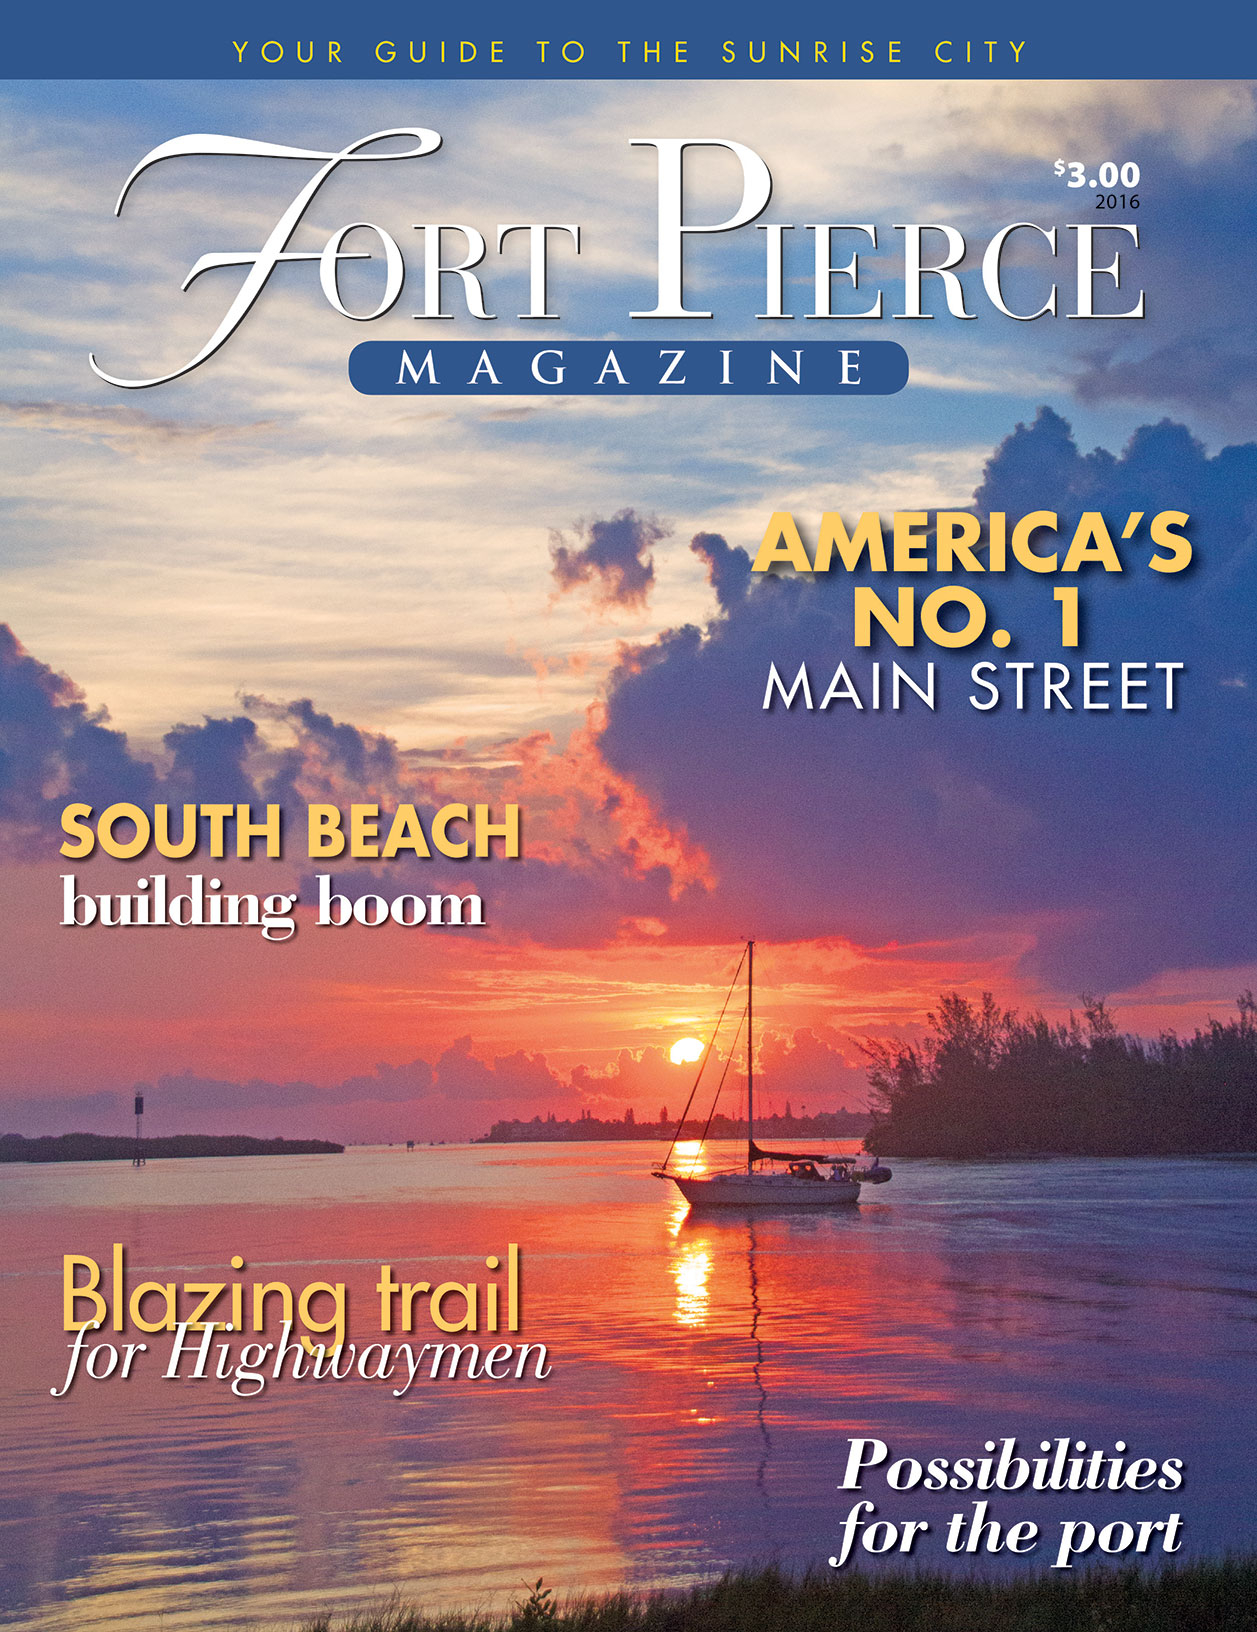 Fort Pierce Magazine - Vol. 9, No. 1